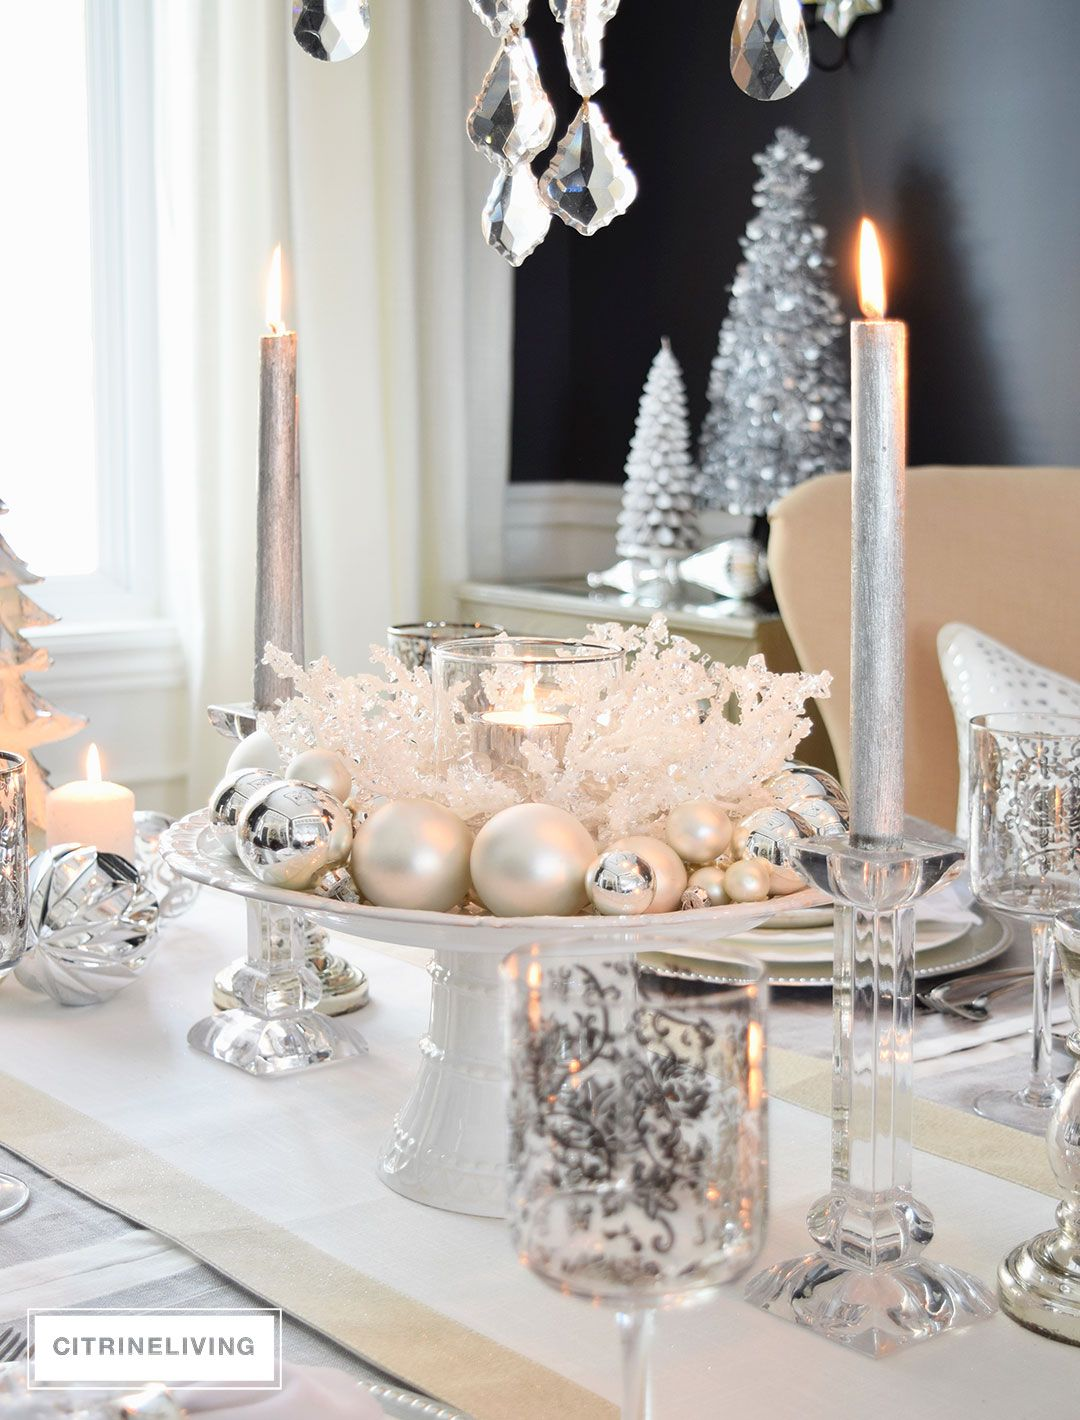 Pin By Citrineliving By Tamara Anka On Christmas Tables Tablescapebloghop Christmas Centerpieces Silver Christmas Decorations Christmas Dining Table